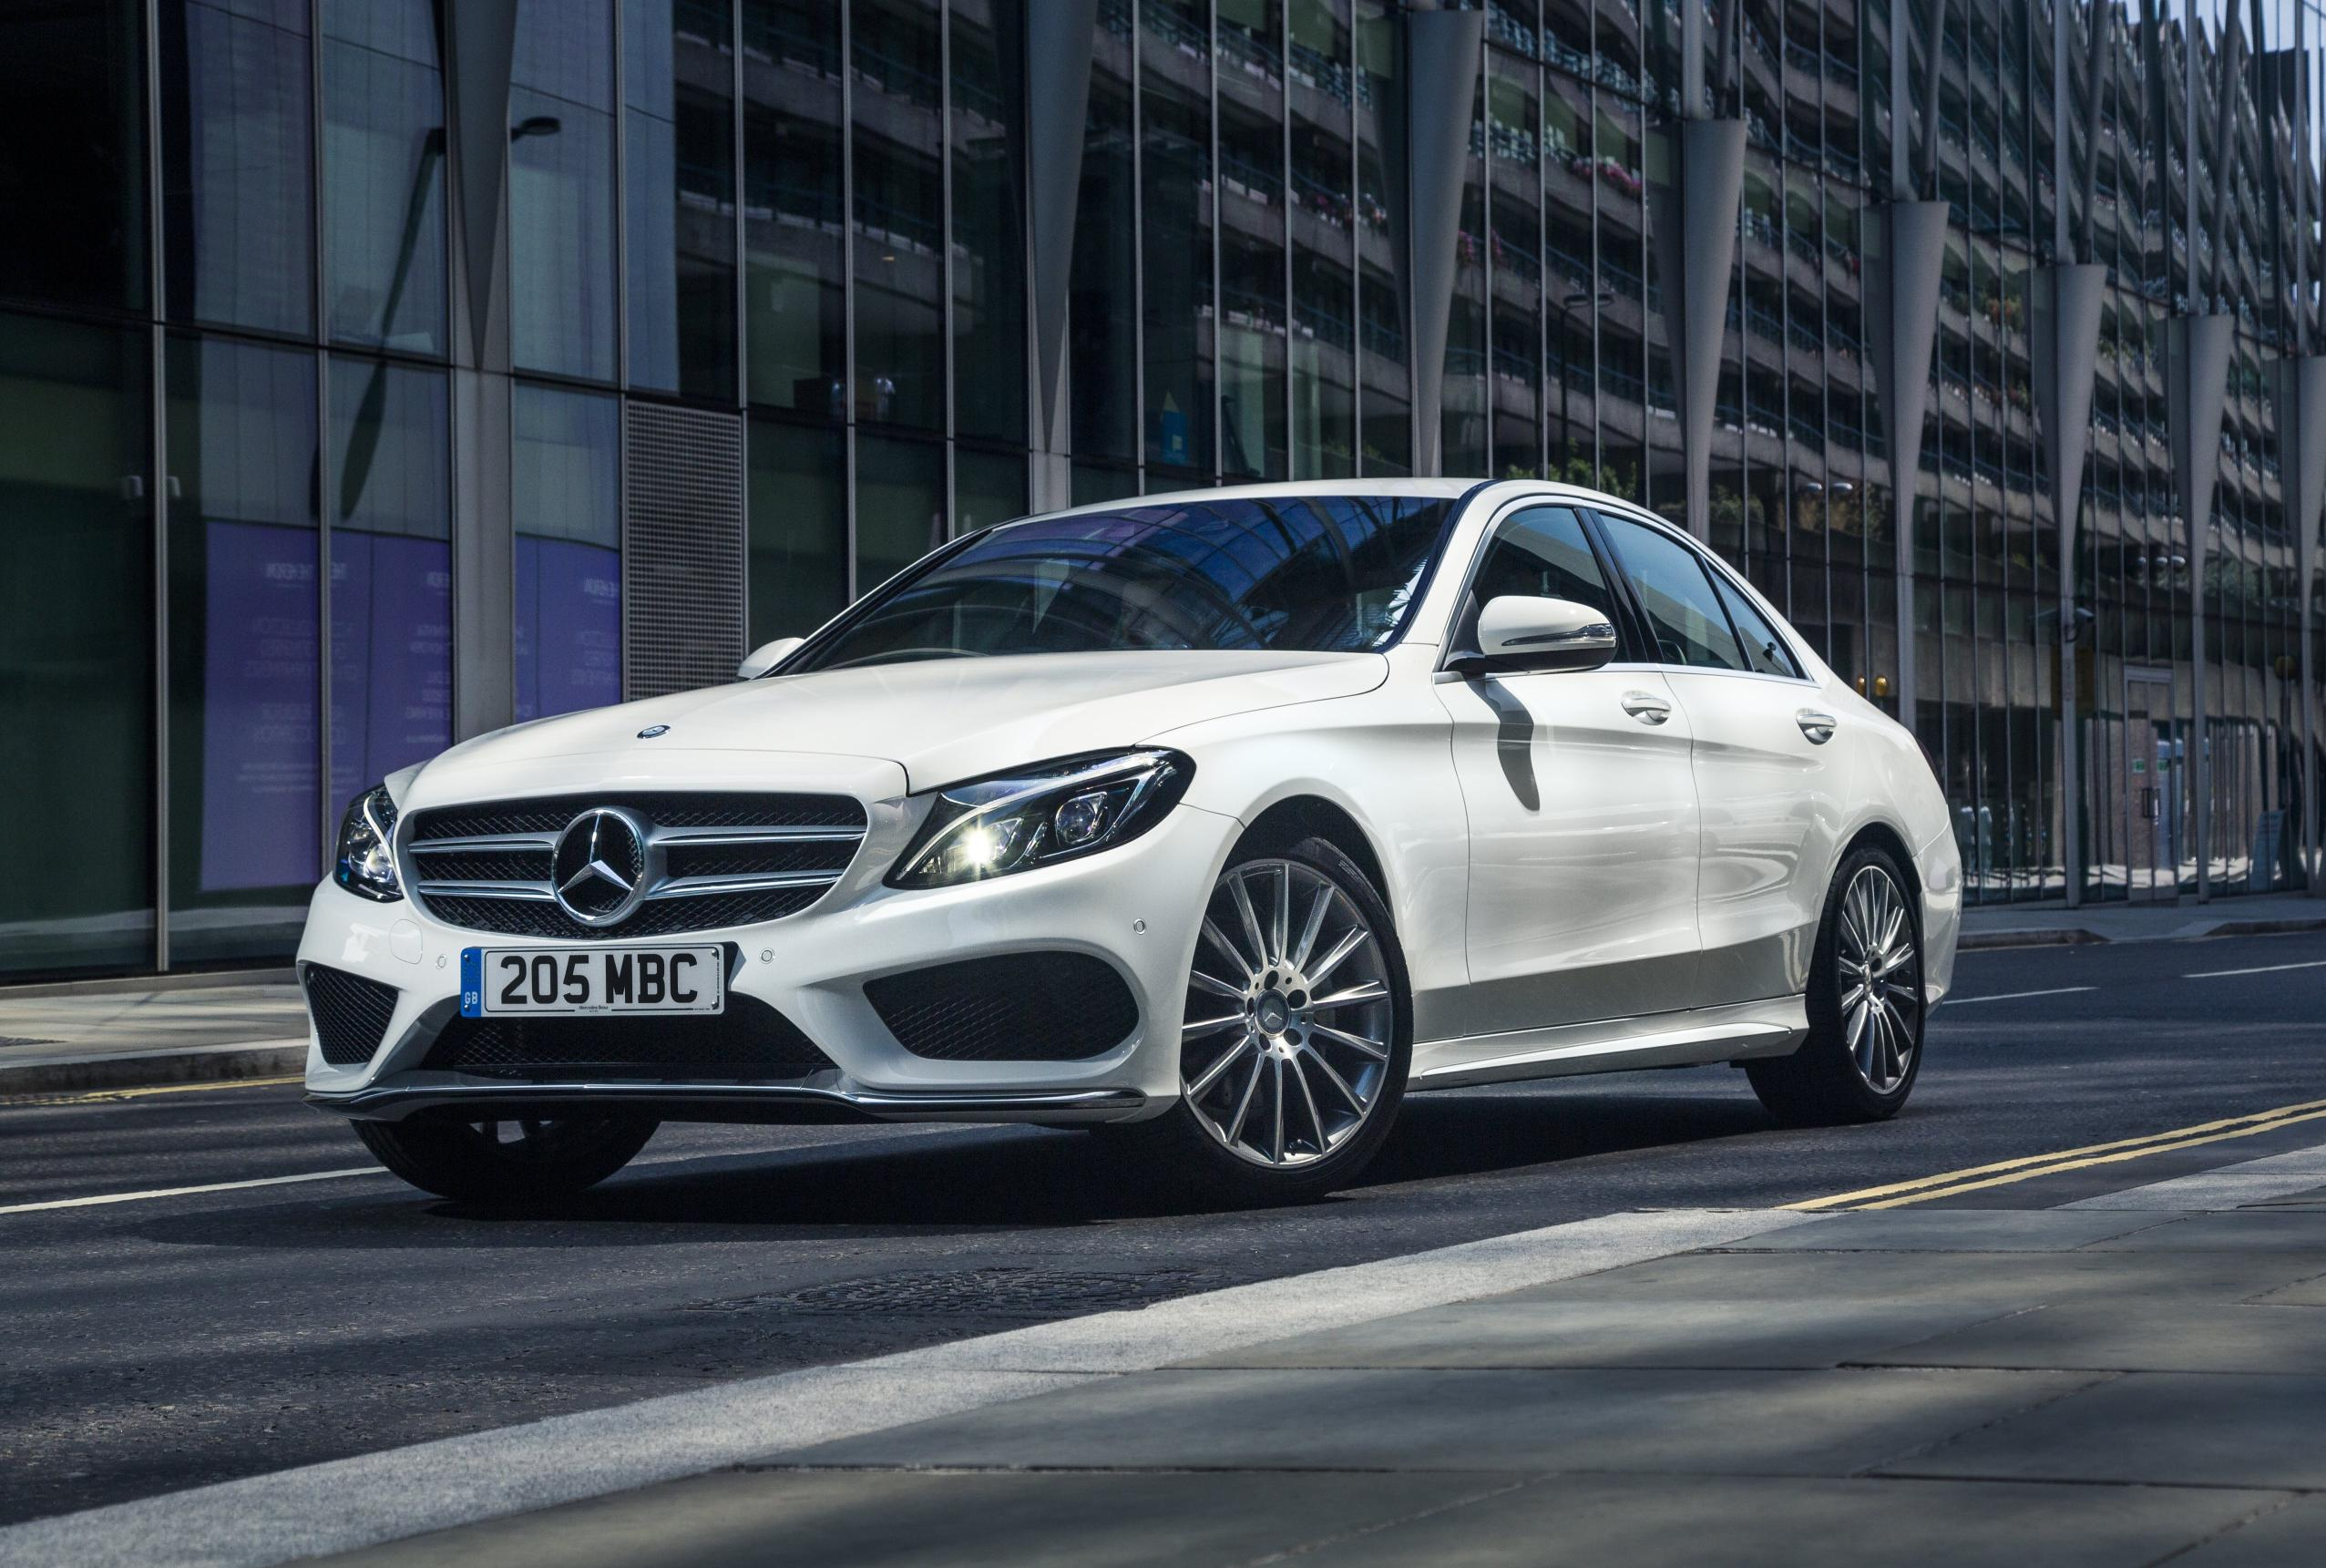 2015 mercedes benz c class launch date revealed